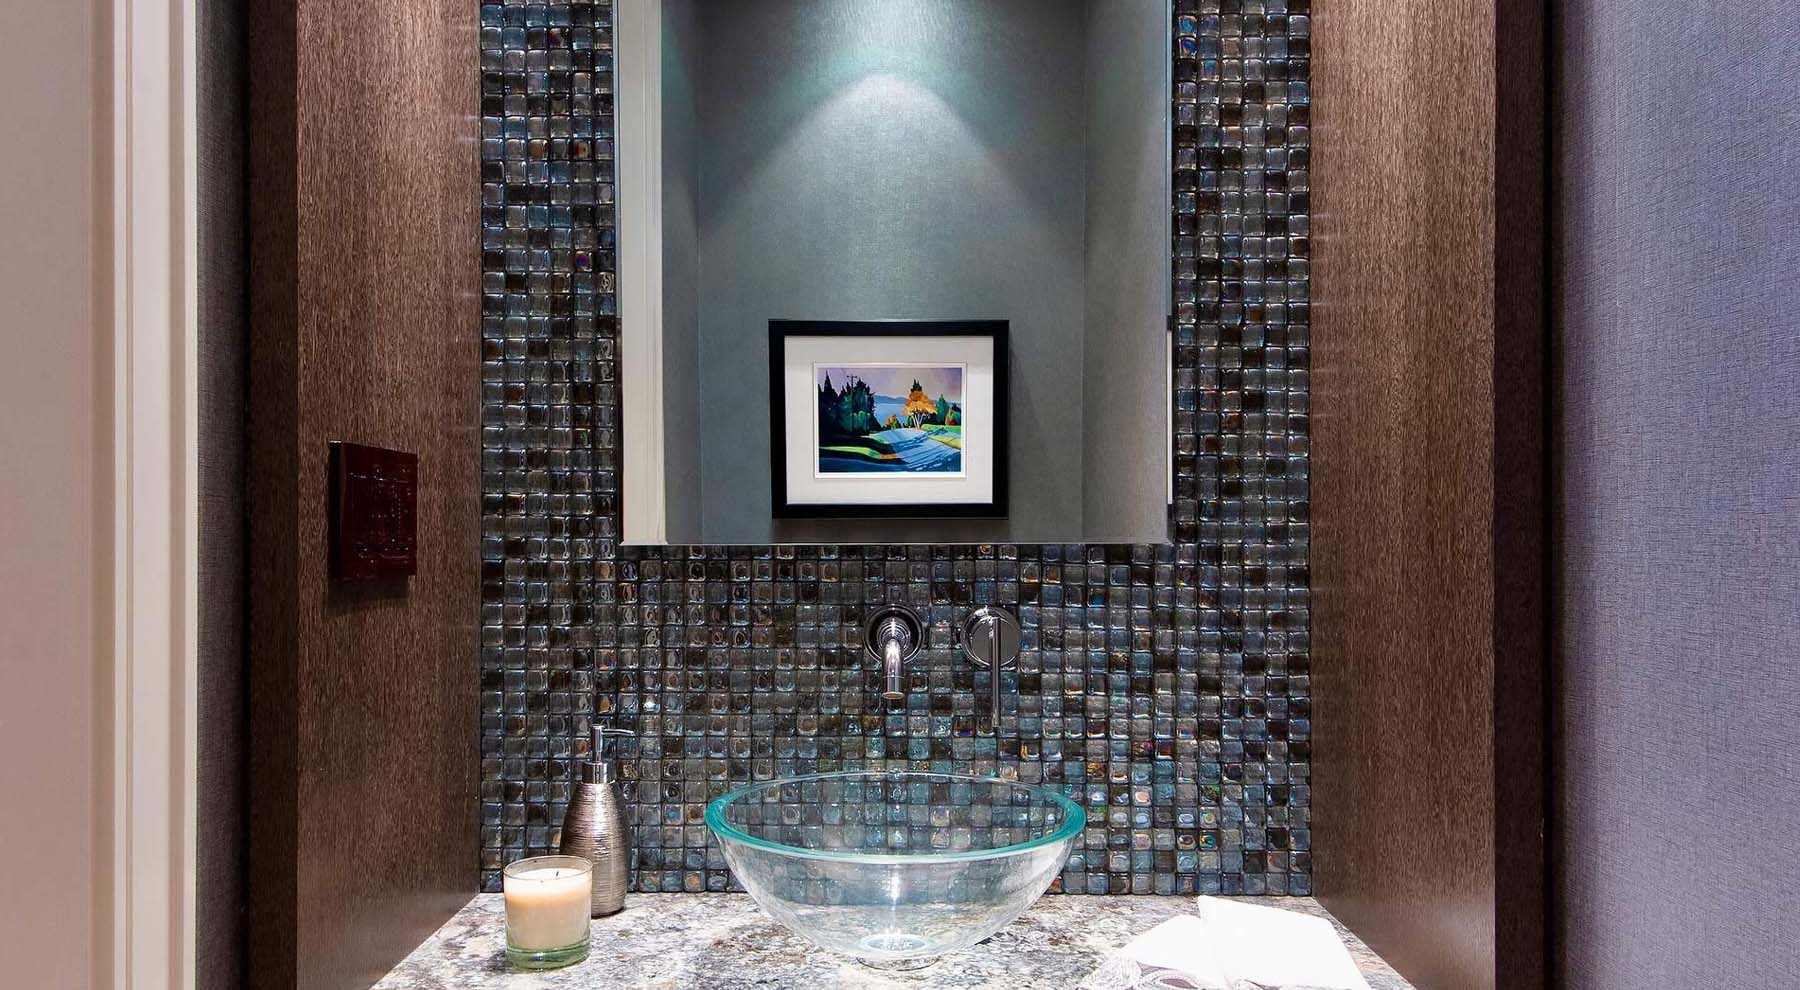 Glass tile backsplash in this modern bathroom design. Glass is a common material used in contemporary design.